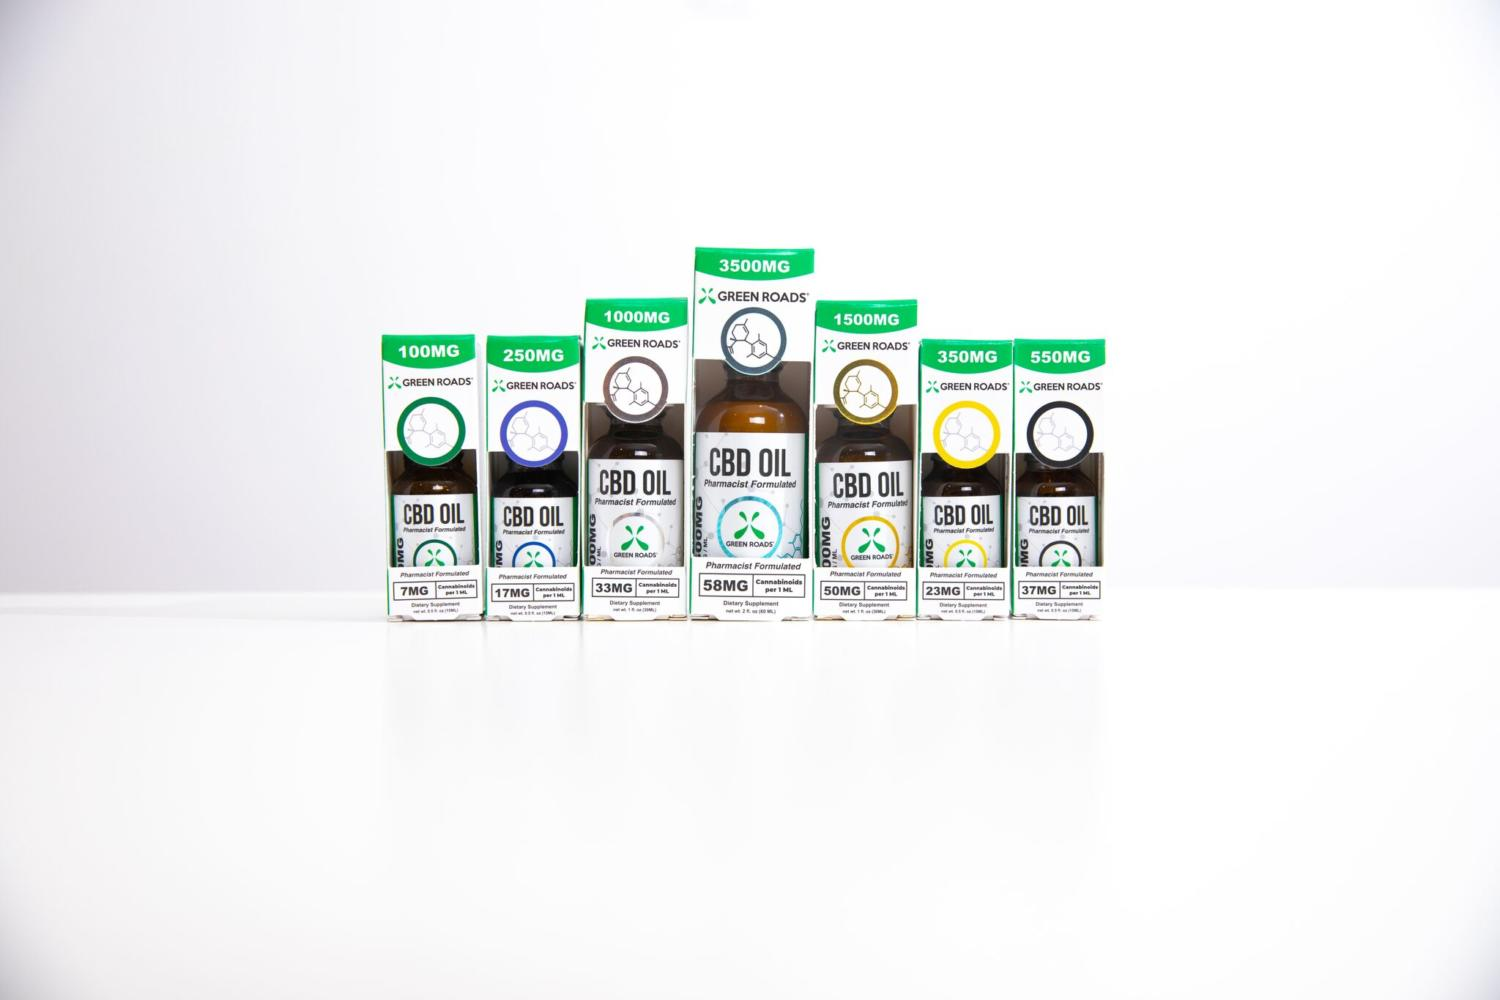 Green Roads CBD Oils Reviewed [Fully Tested] - Greenshoppers